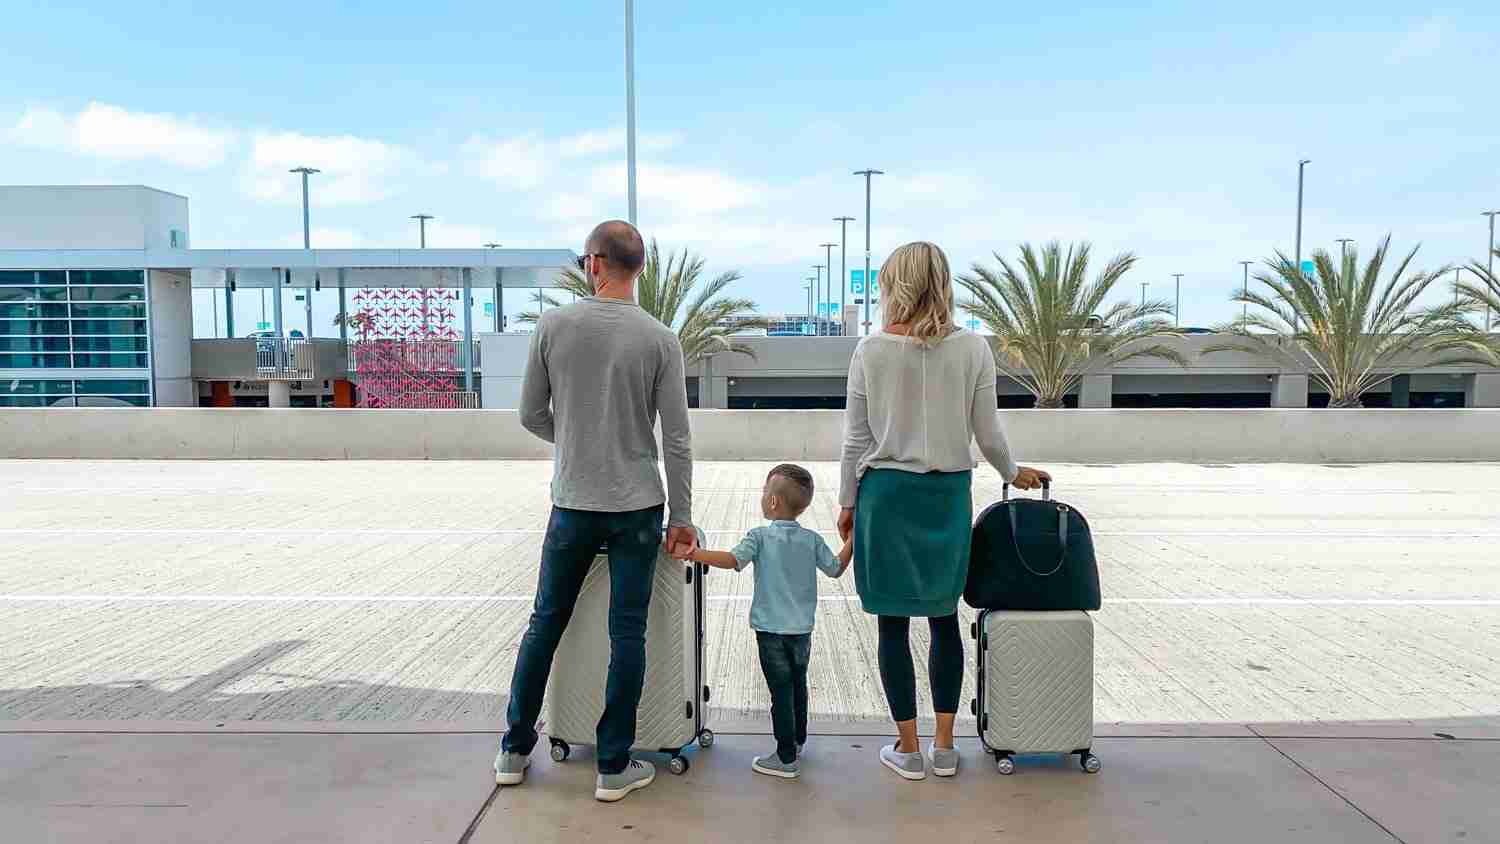 Family standing with luggage about to leave on a vacation